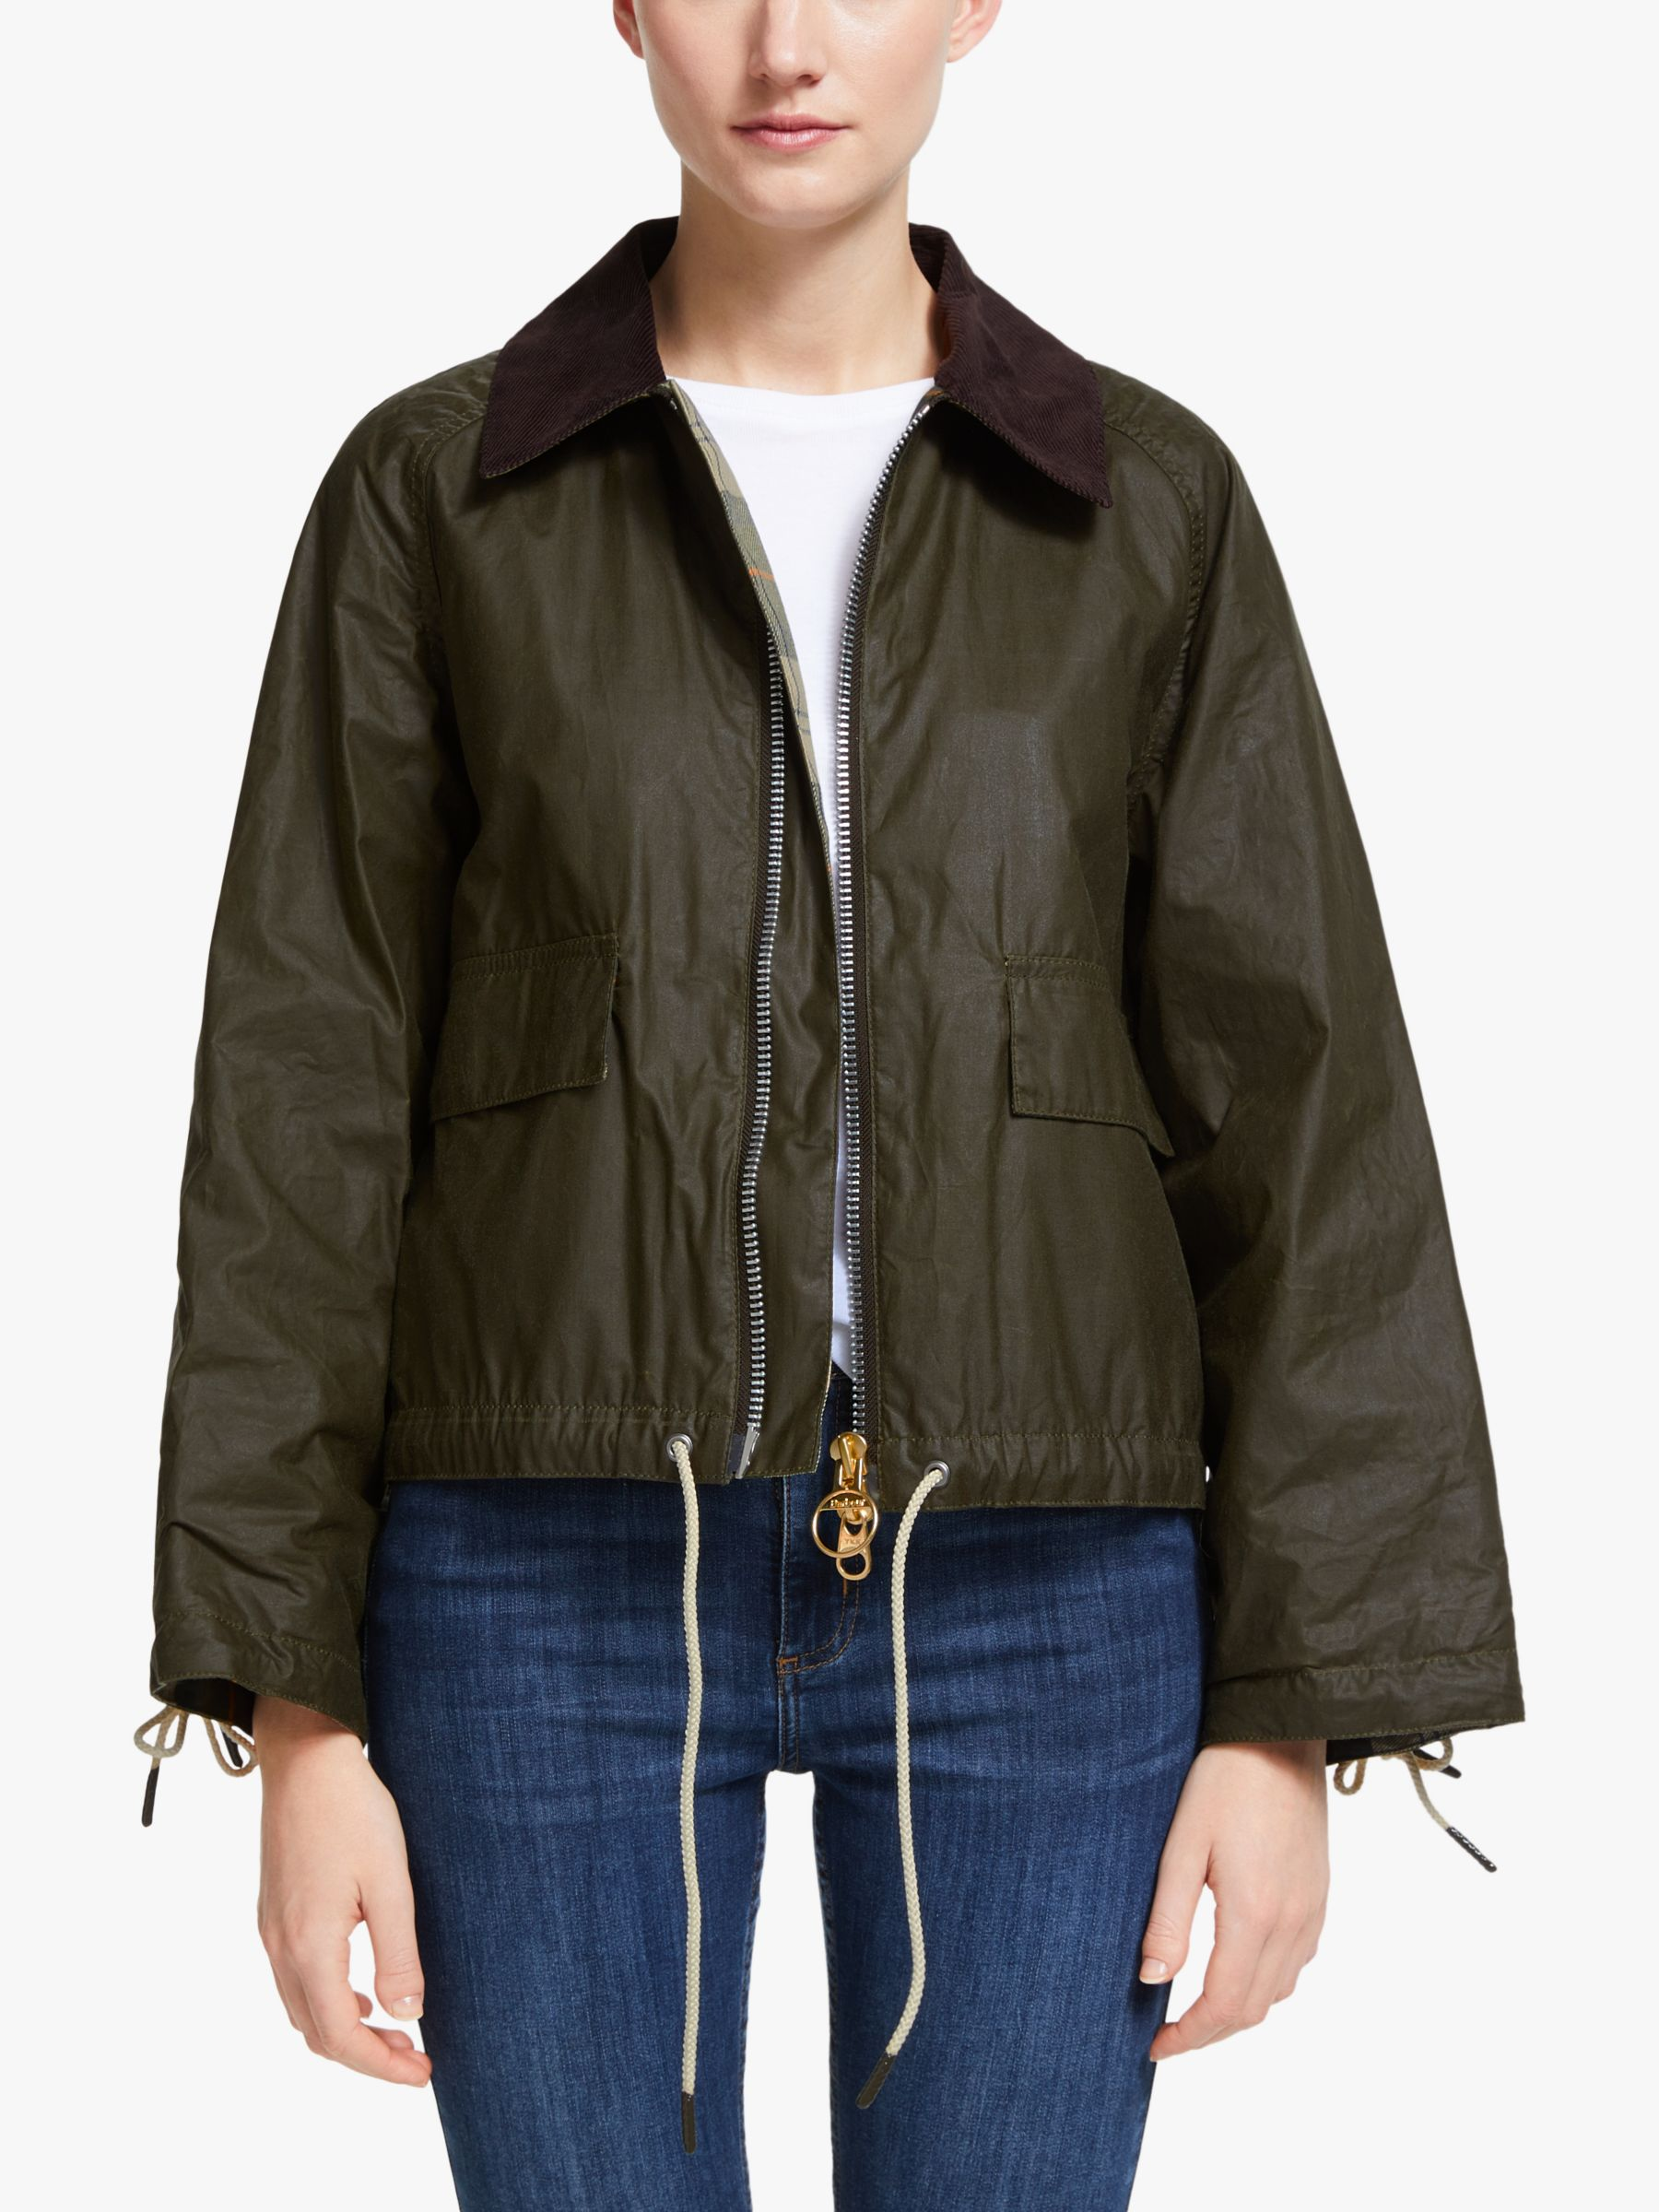 Barbour Barbour by ALEXACHUNG Margot Waxed Cotton Bomber Jacket, Archive Olive/Ancient